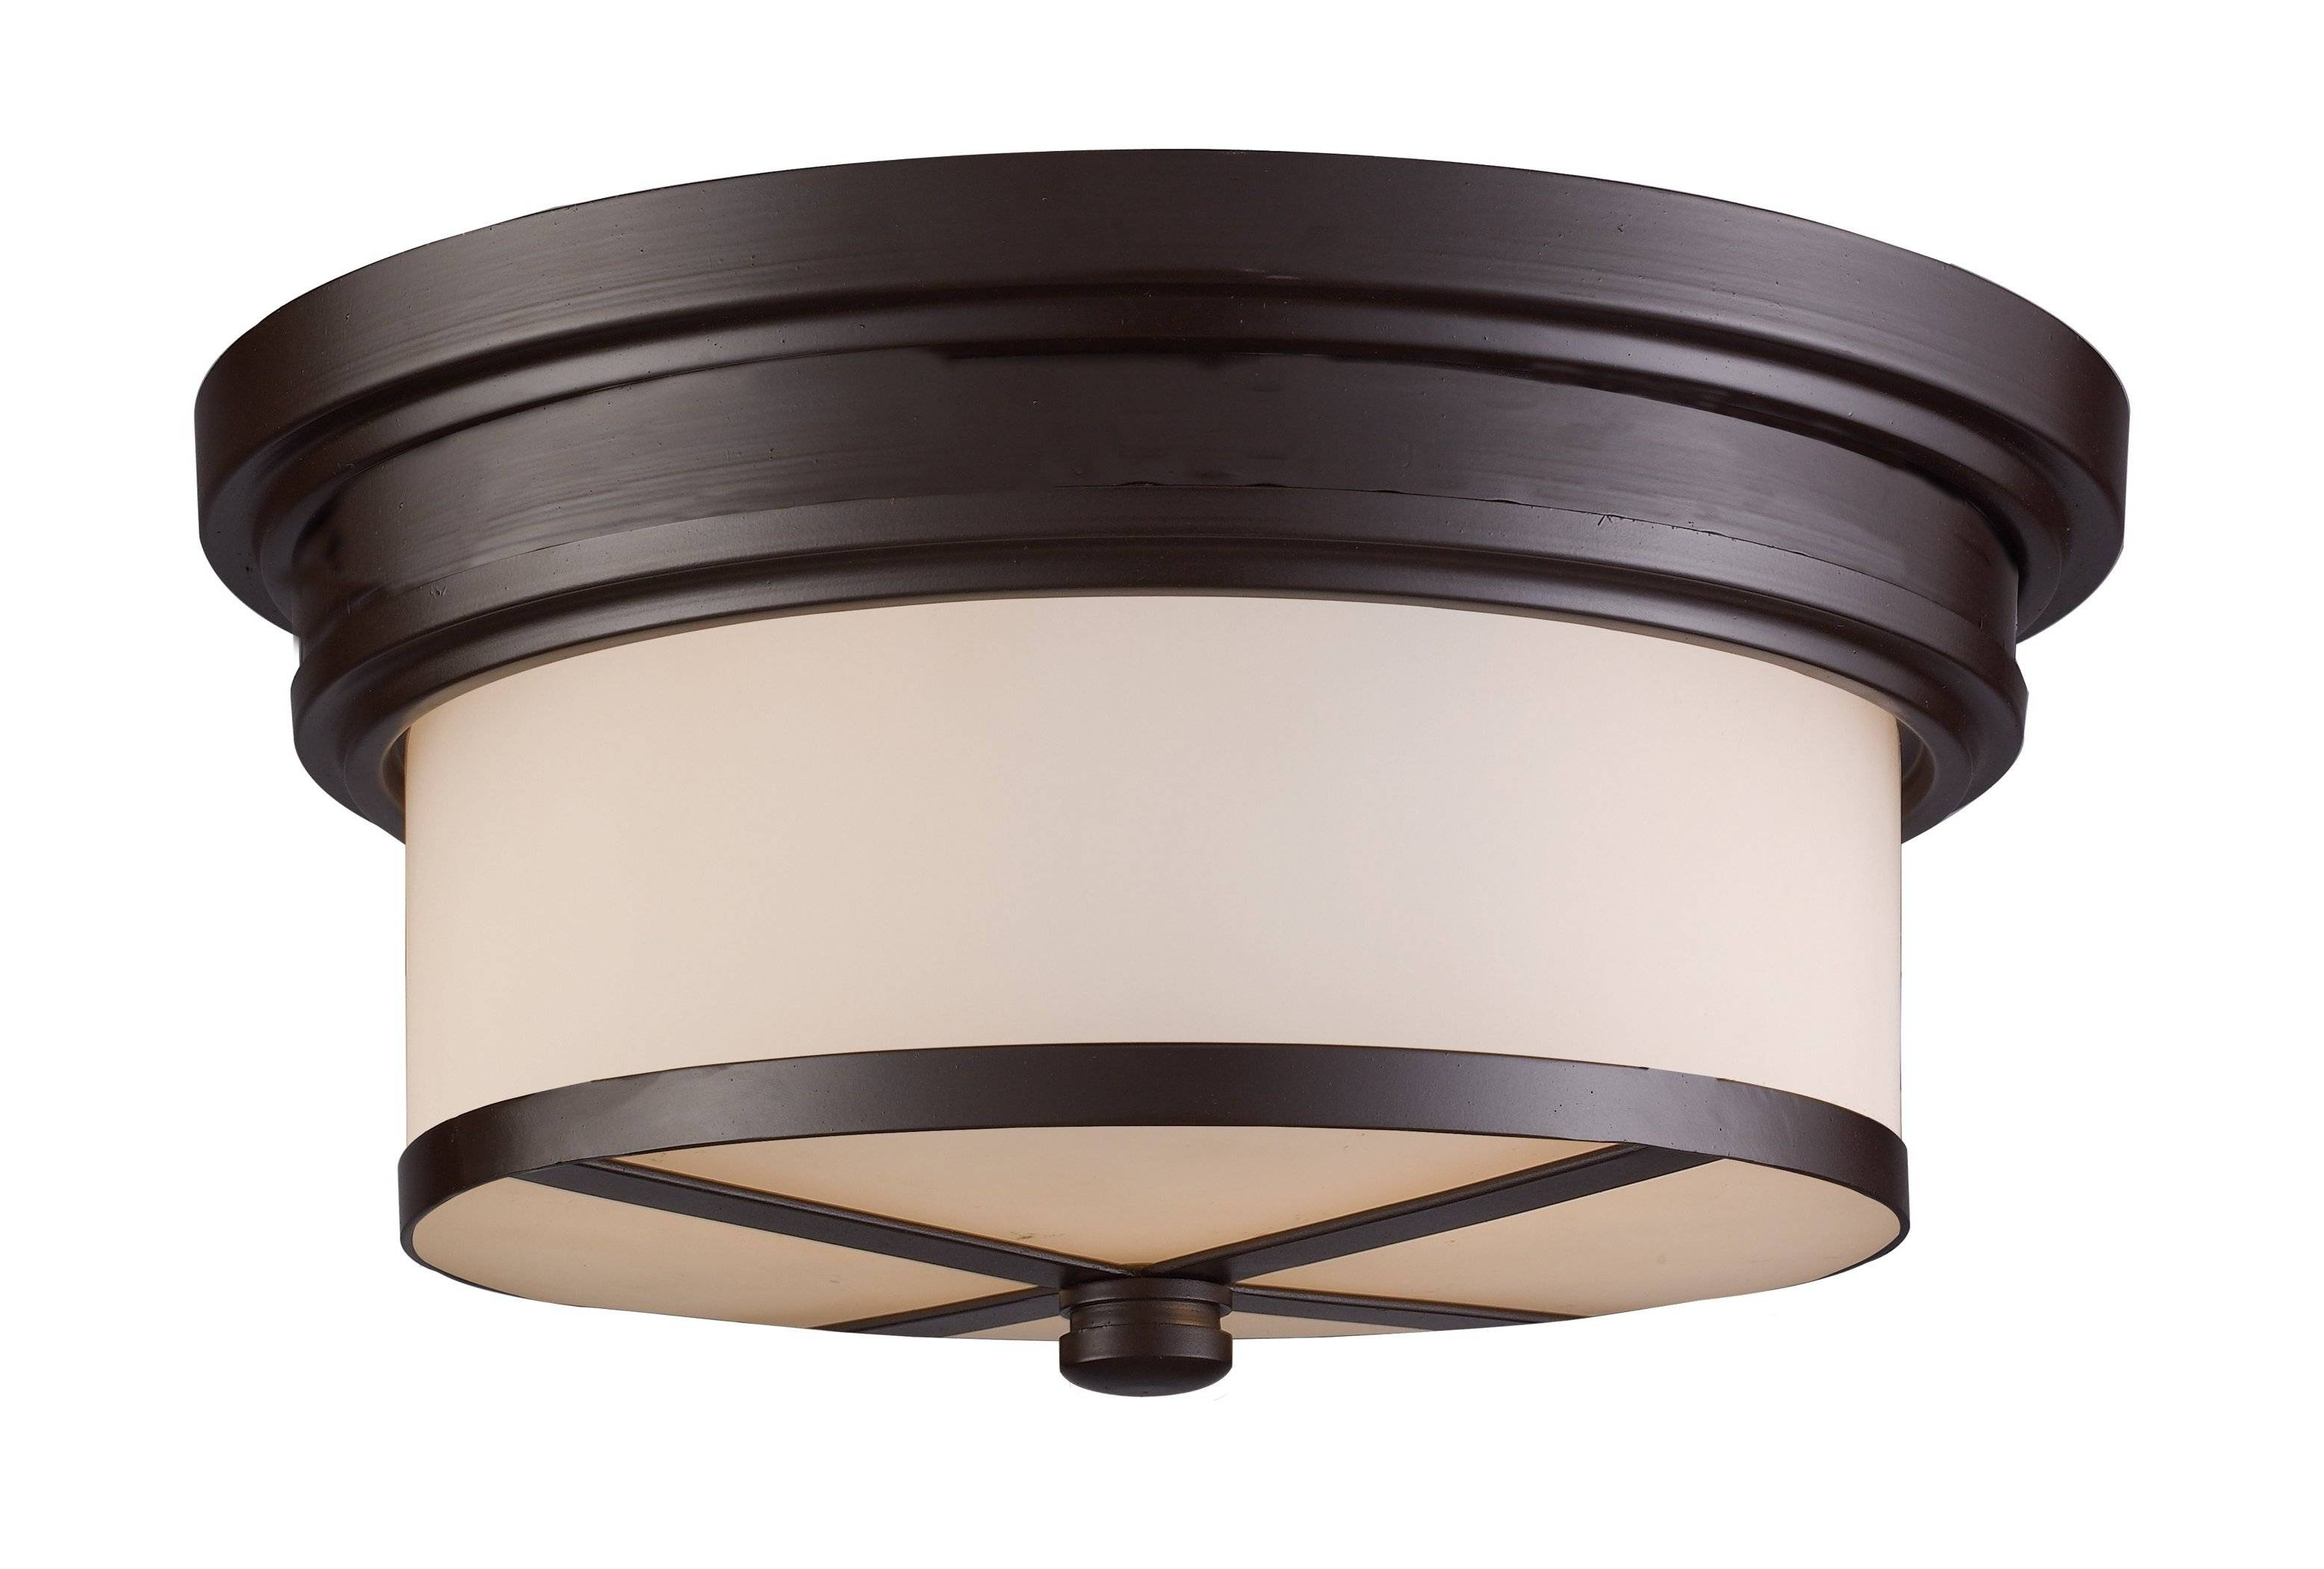 Ceiling Lights With Pull Chain – Baby Exit Pertaining To Pull Chain Pendant Lights Fixtures (View 7 of 15)